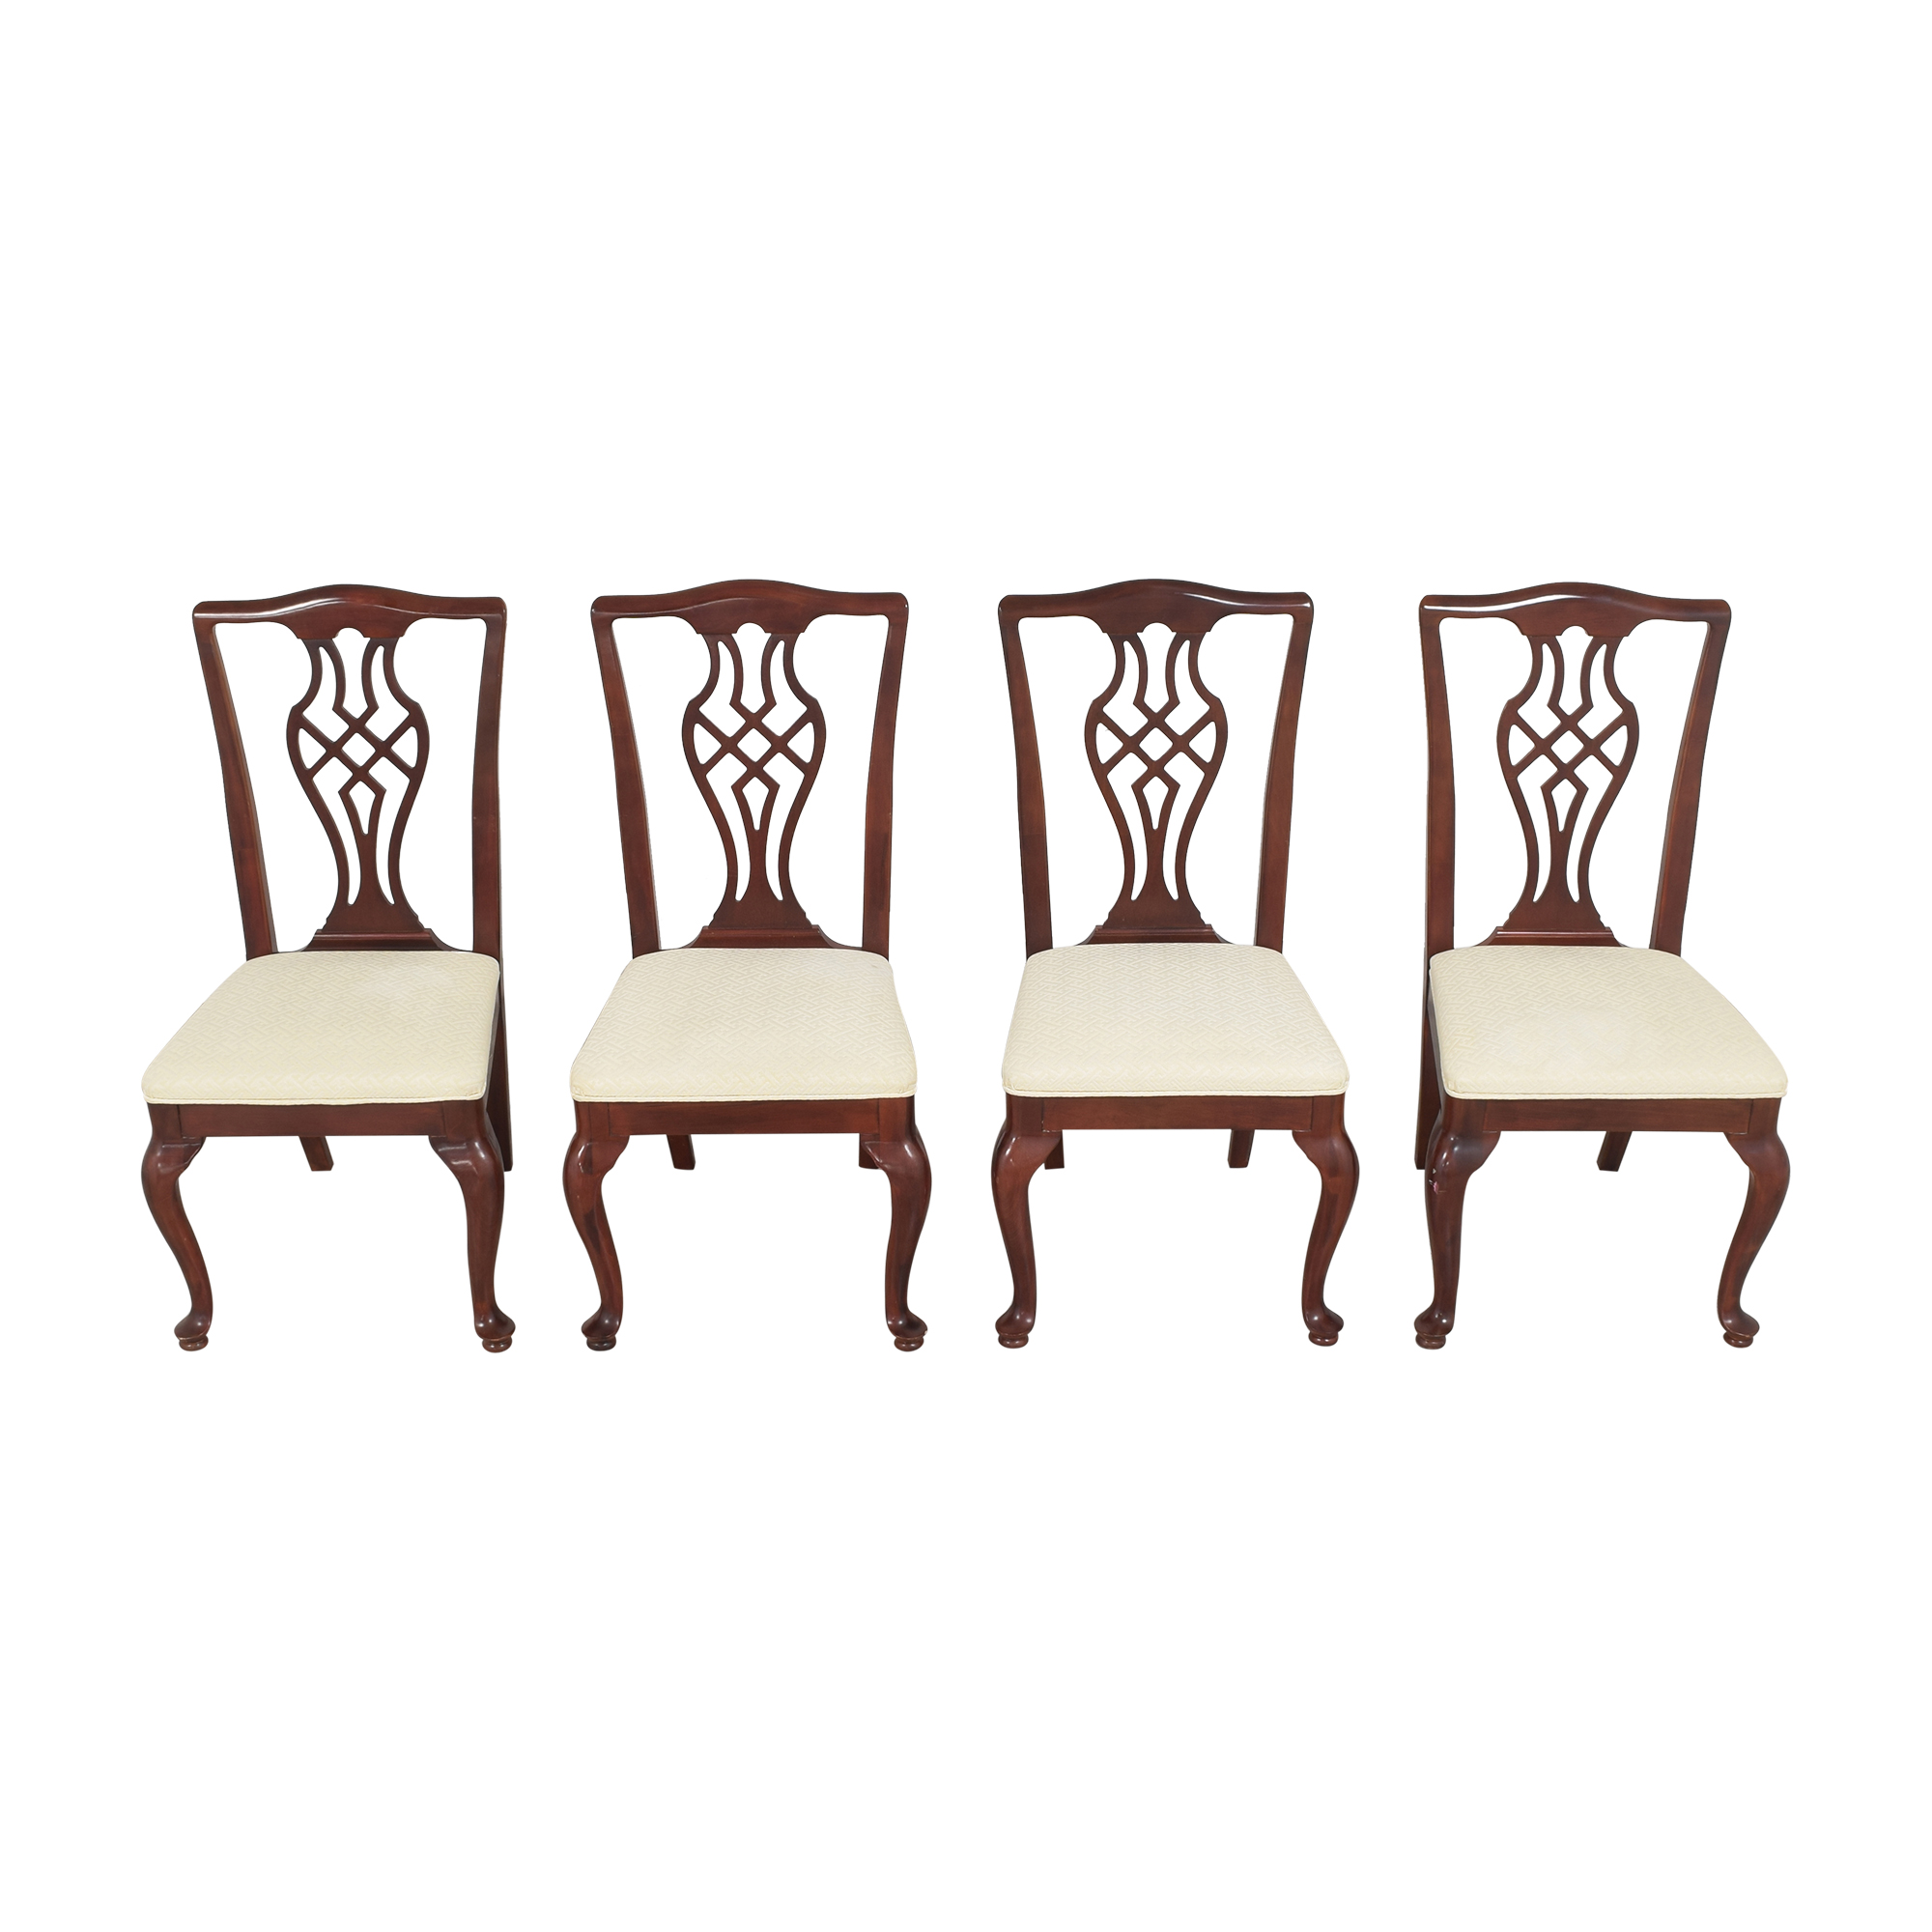 Drexel Heritage Chippendale Dining Chairs / Dining Chairs